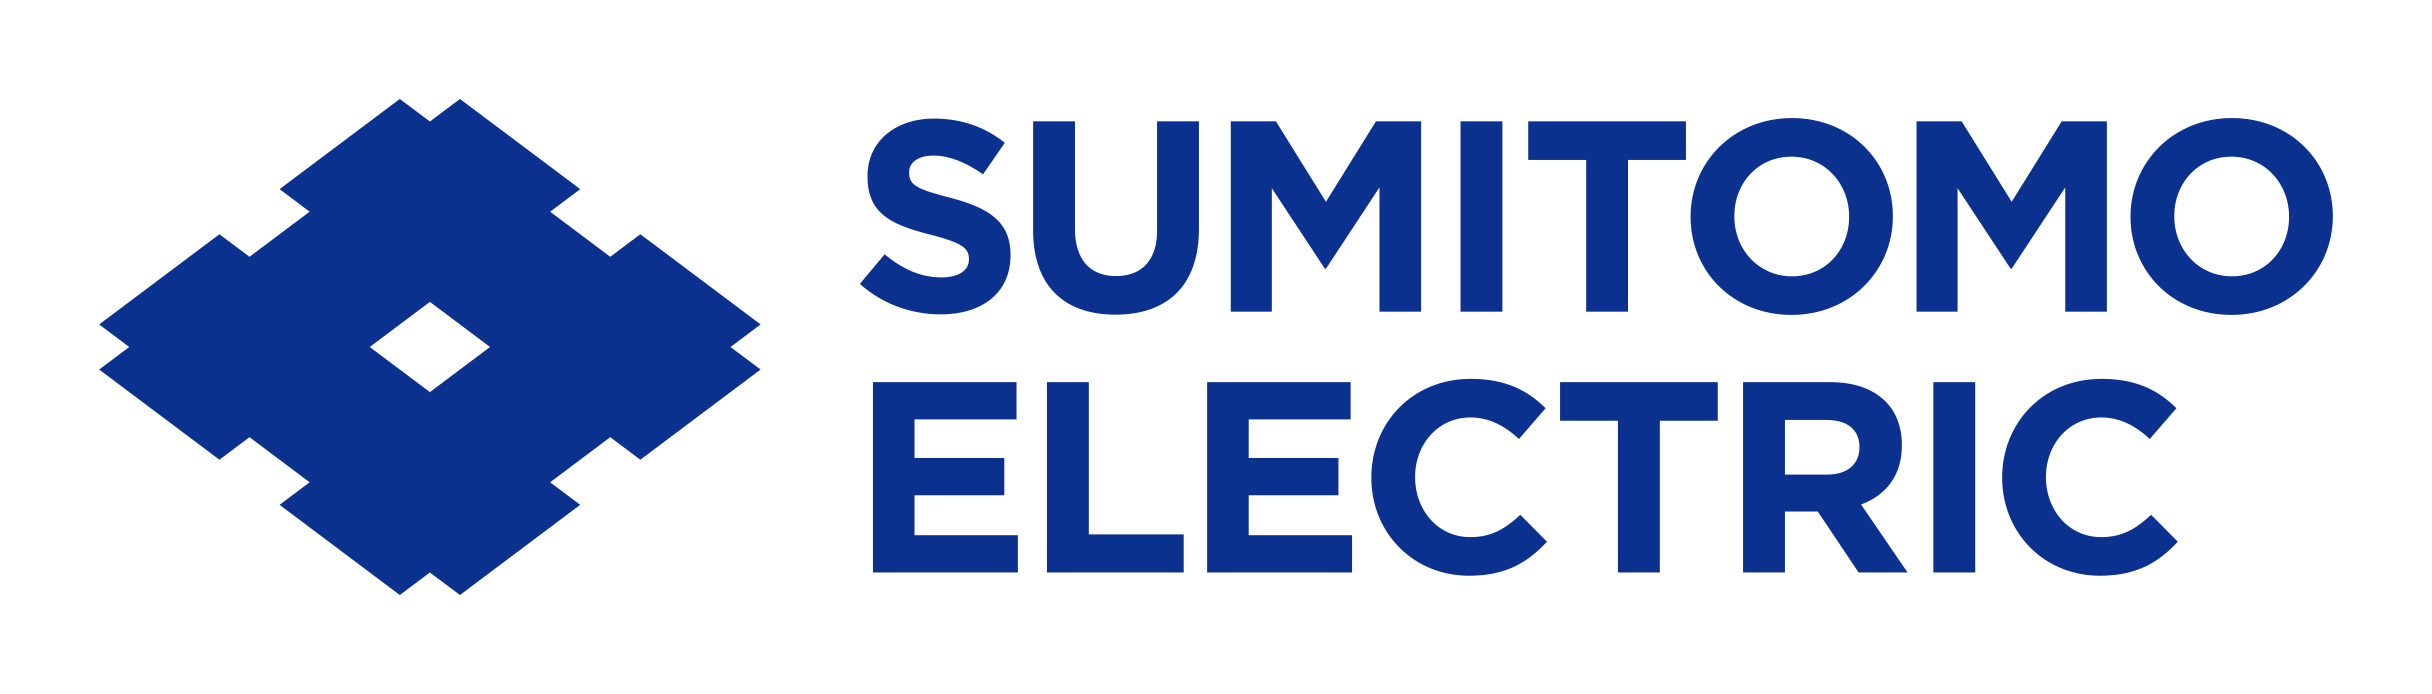 Sumitomo Electric Logo.jpg